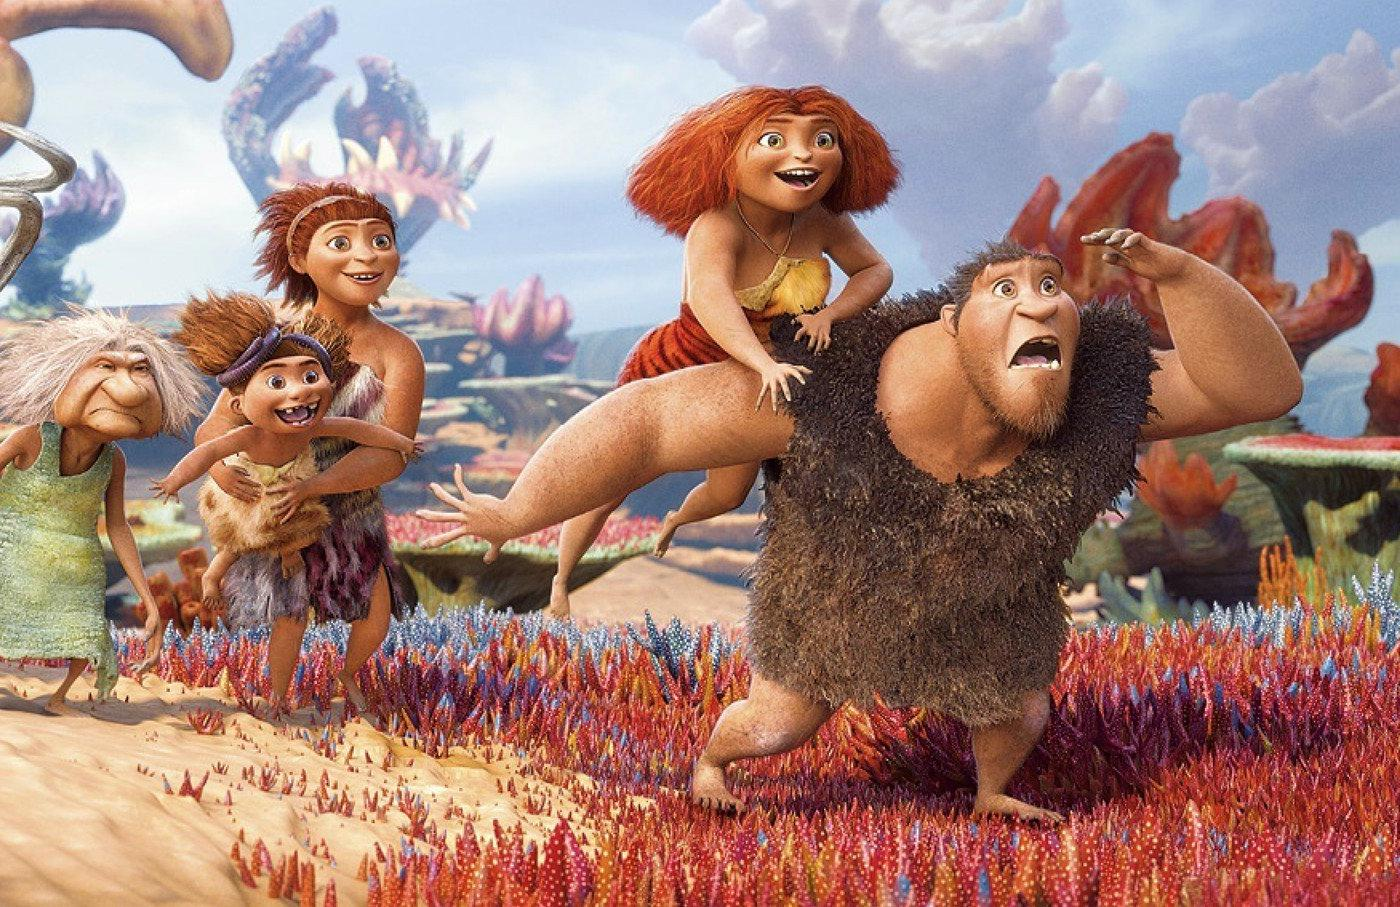 The croods Wallpaper Kidsoo demo tempalte for